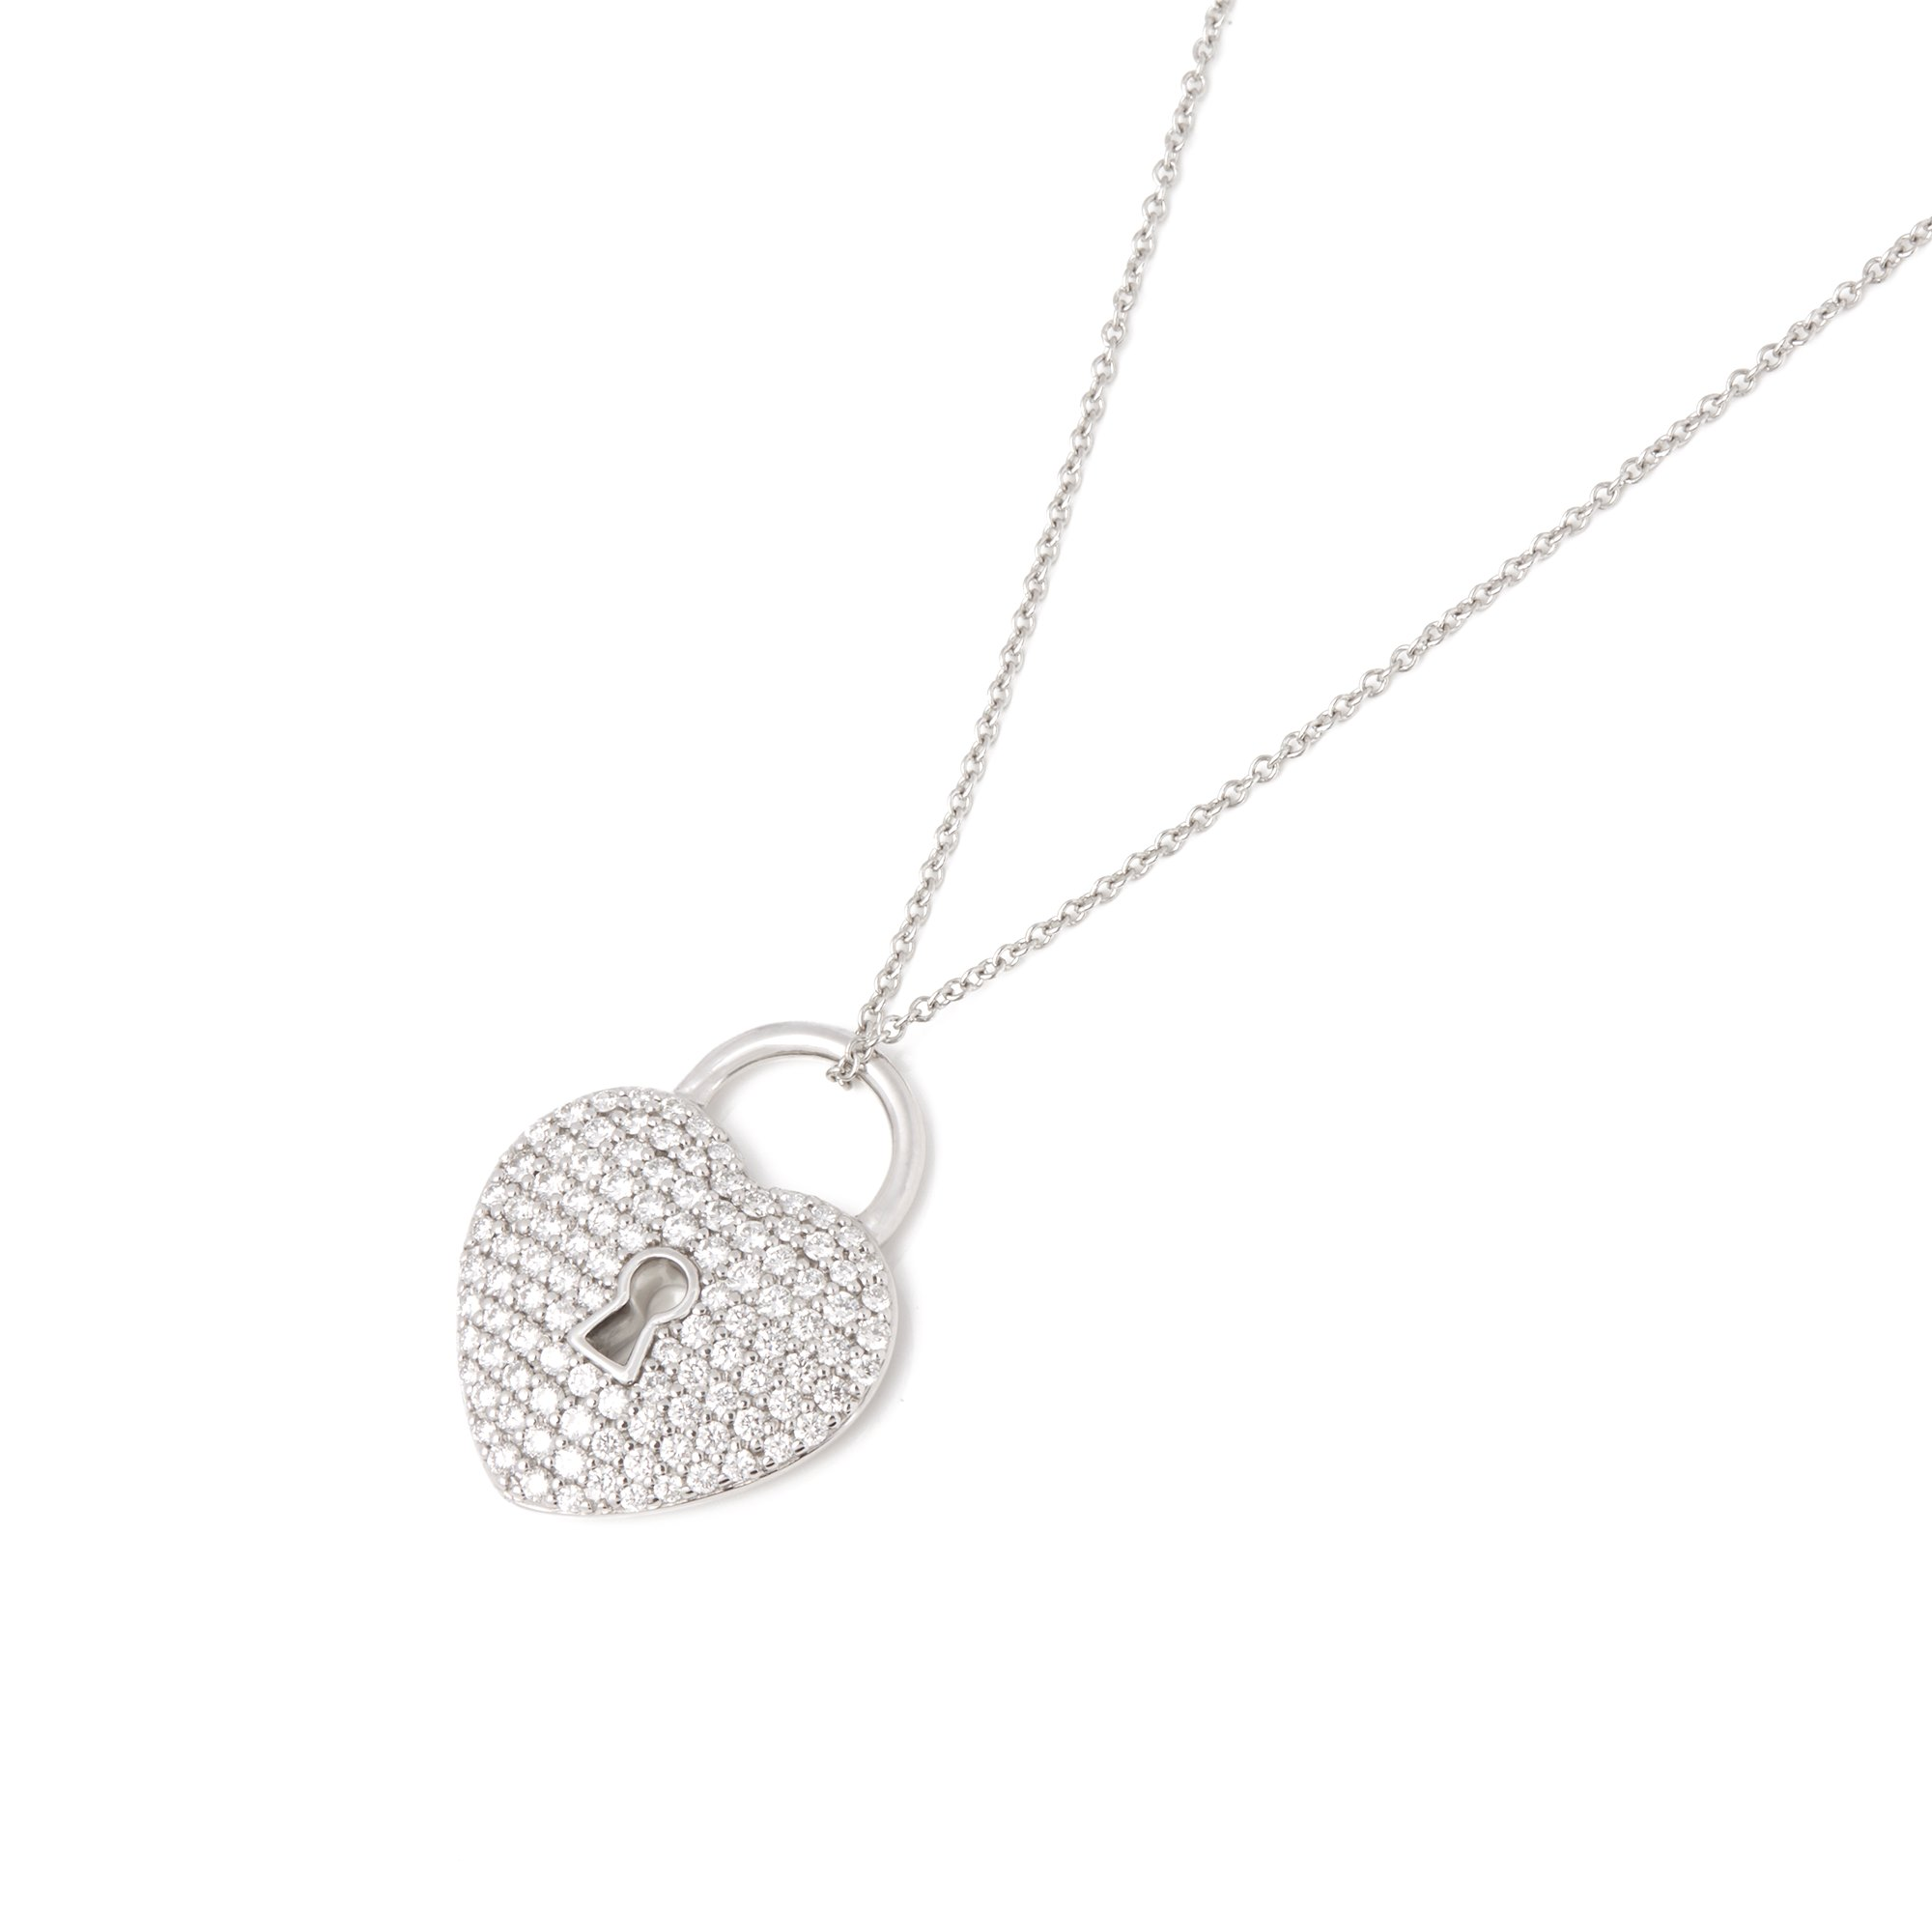 d1c3ce92e Tiffany & Co. Platinum Diamond Heart Tiffany Key Pendant Necklace ...